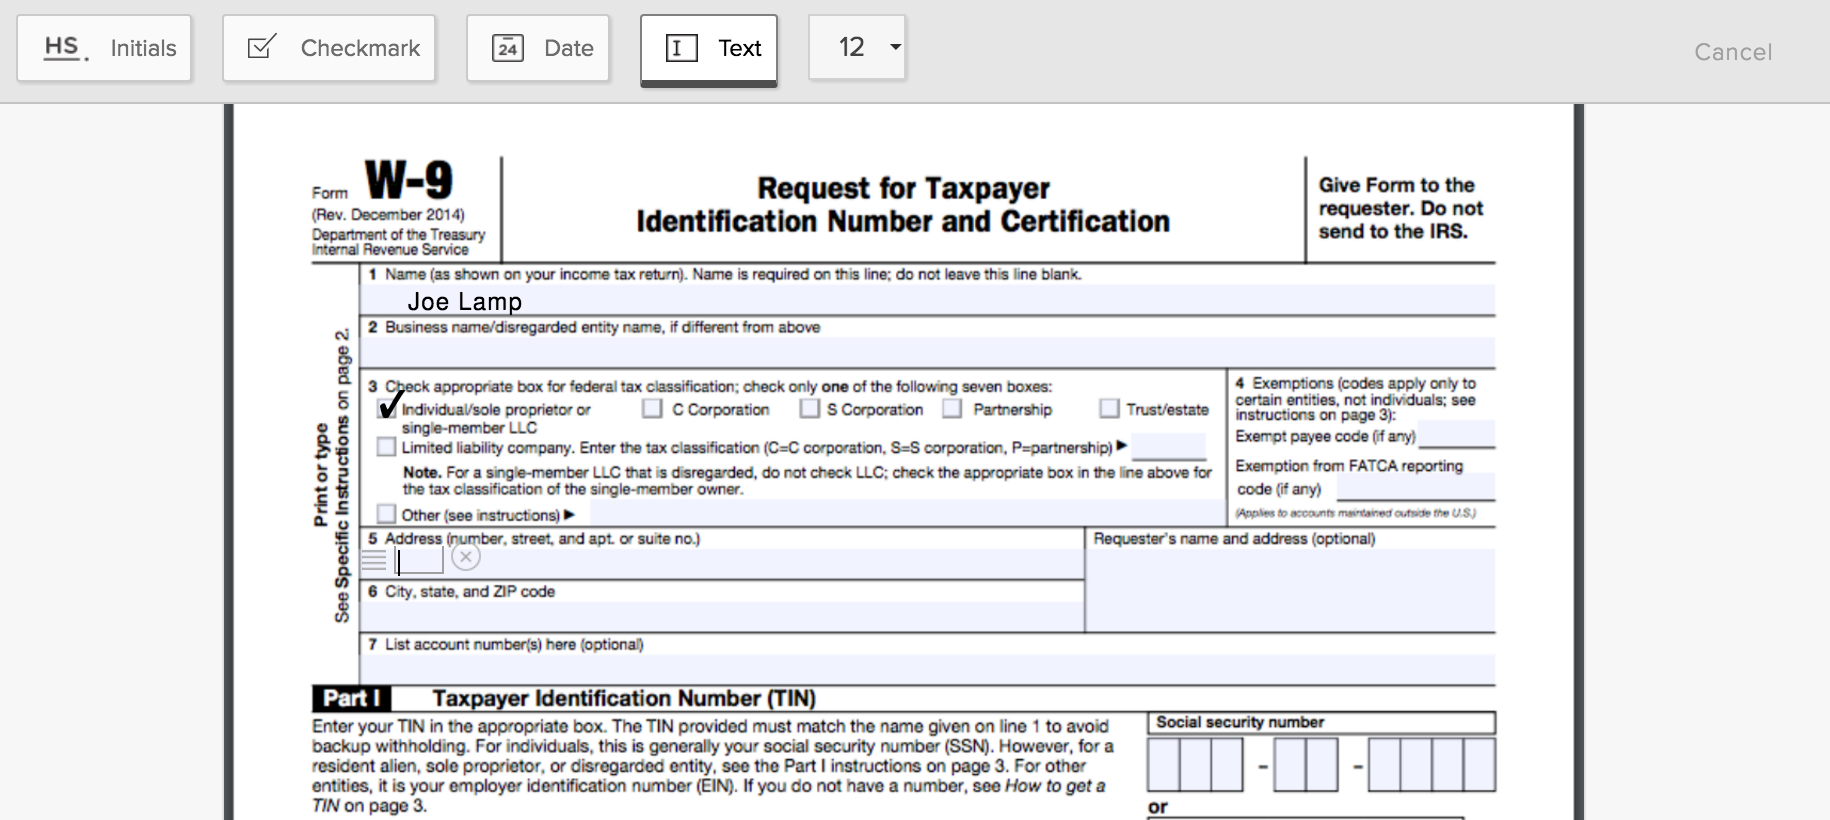 How To Fill Out A W-9 Form Online - Hellosign Blog